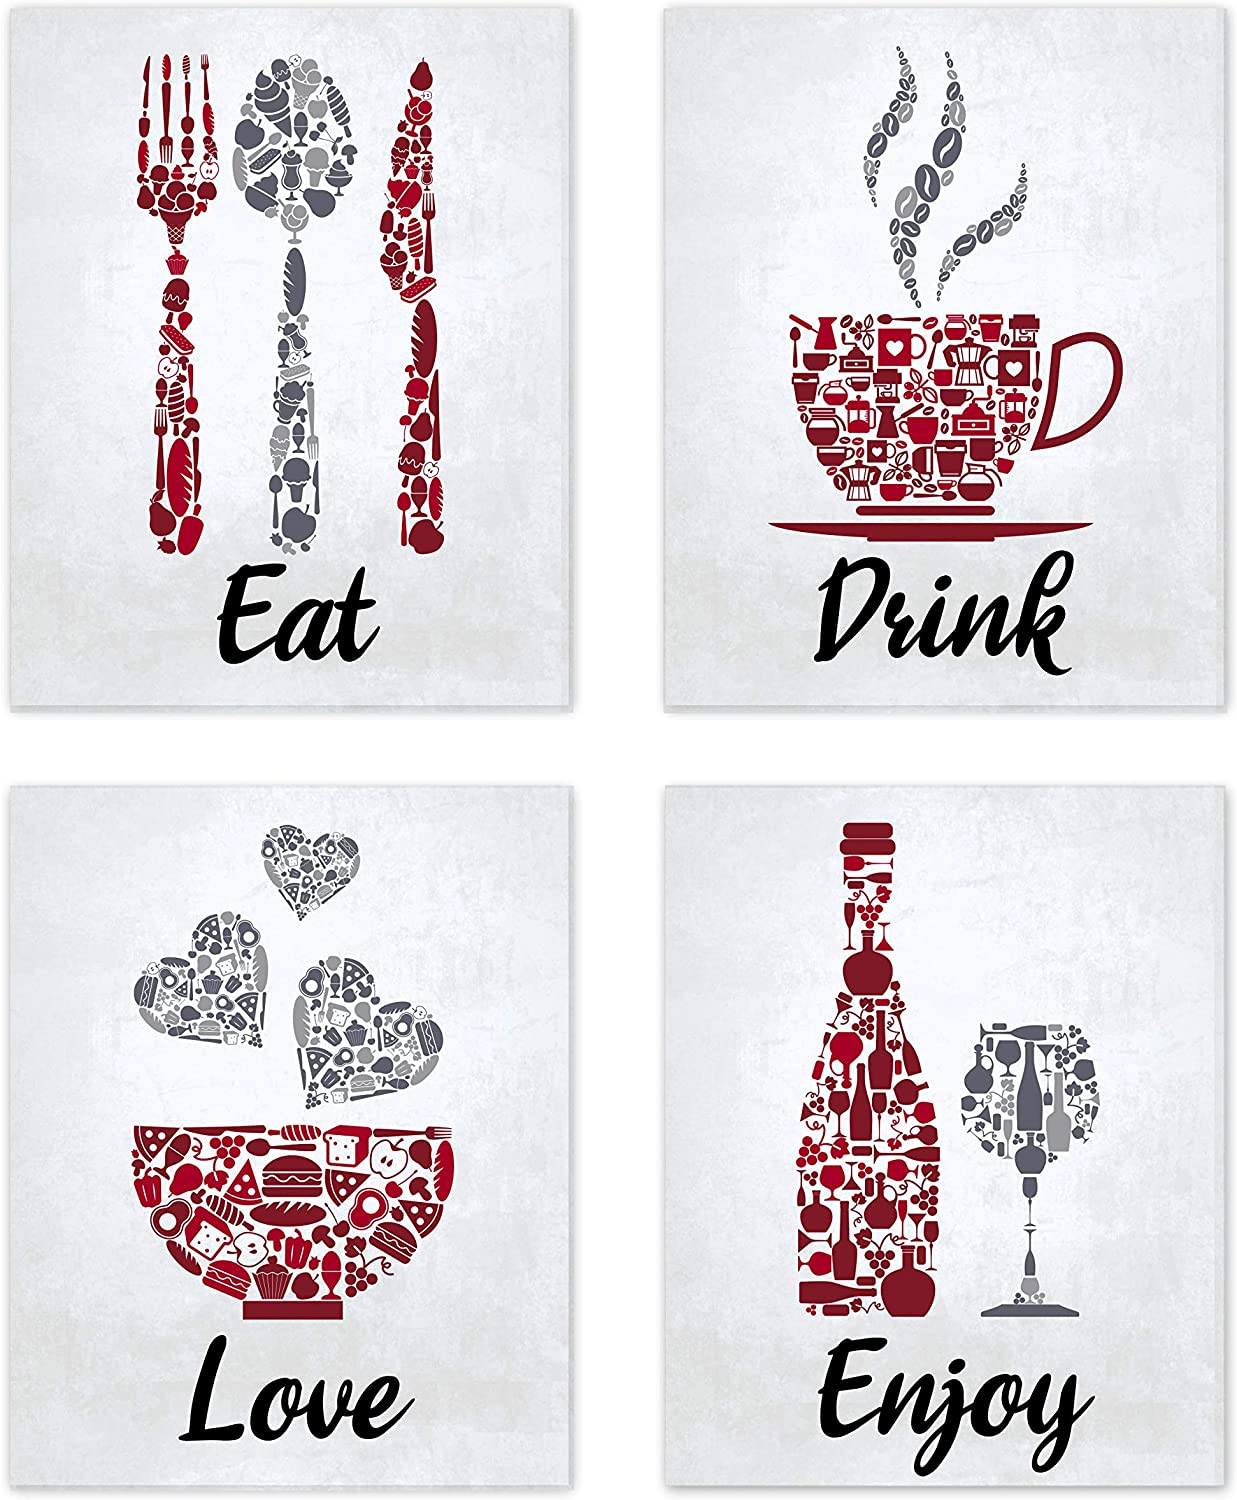 """Red Maroon Grey White Mosaic Vintage Inspirational Kitchen Restaurant Cafe Bar Wall Art Decorations Eat Drink Love Wine Coffee Hearts Prints Posters Signs Sets Rustic Farmhouse Country Home Dining Room House Decor Funny Sayings Quotes Unframed 8""""x10"""""""